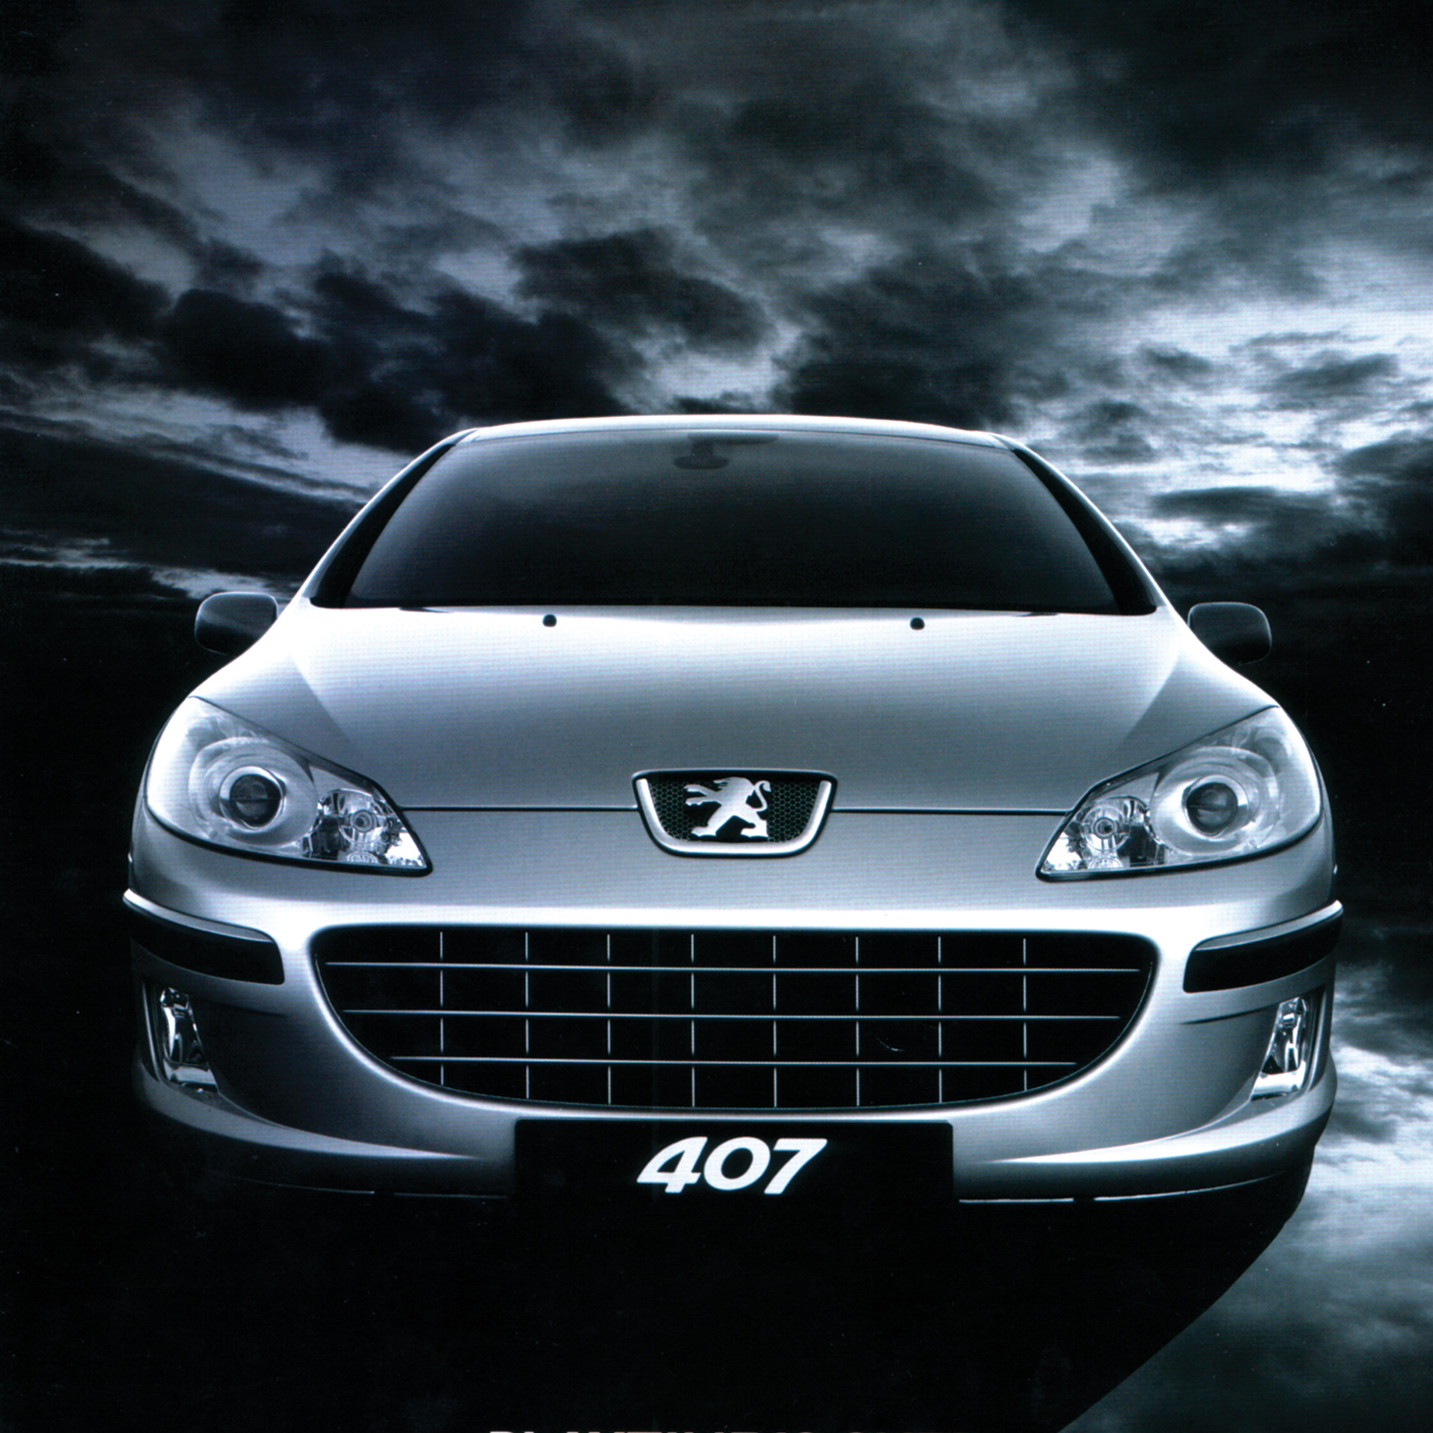 HOME PAGE - TEMPLATE-Recovered_0018_26.Port - Peugeot.jpg